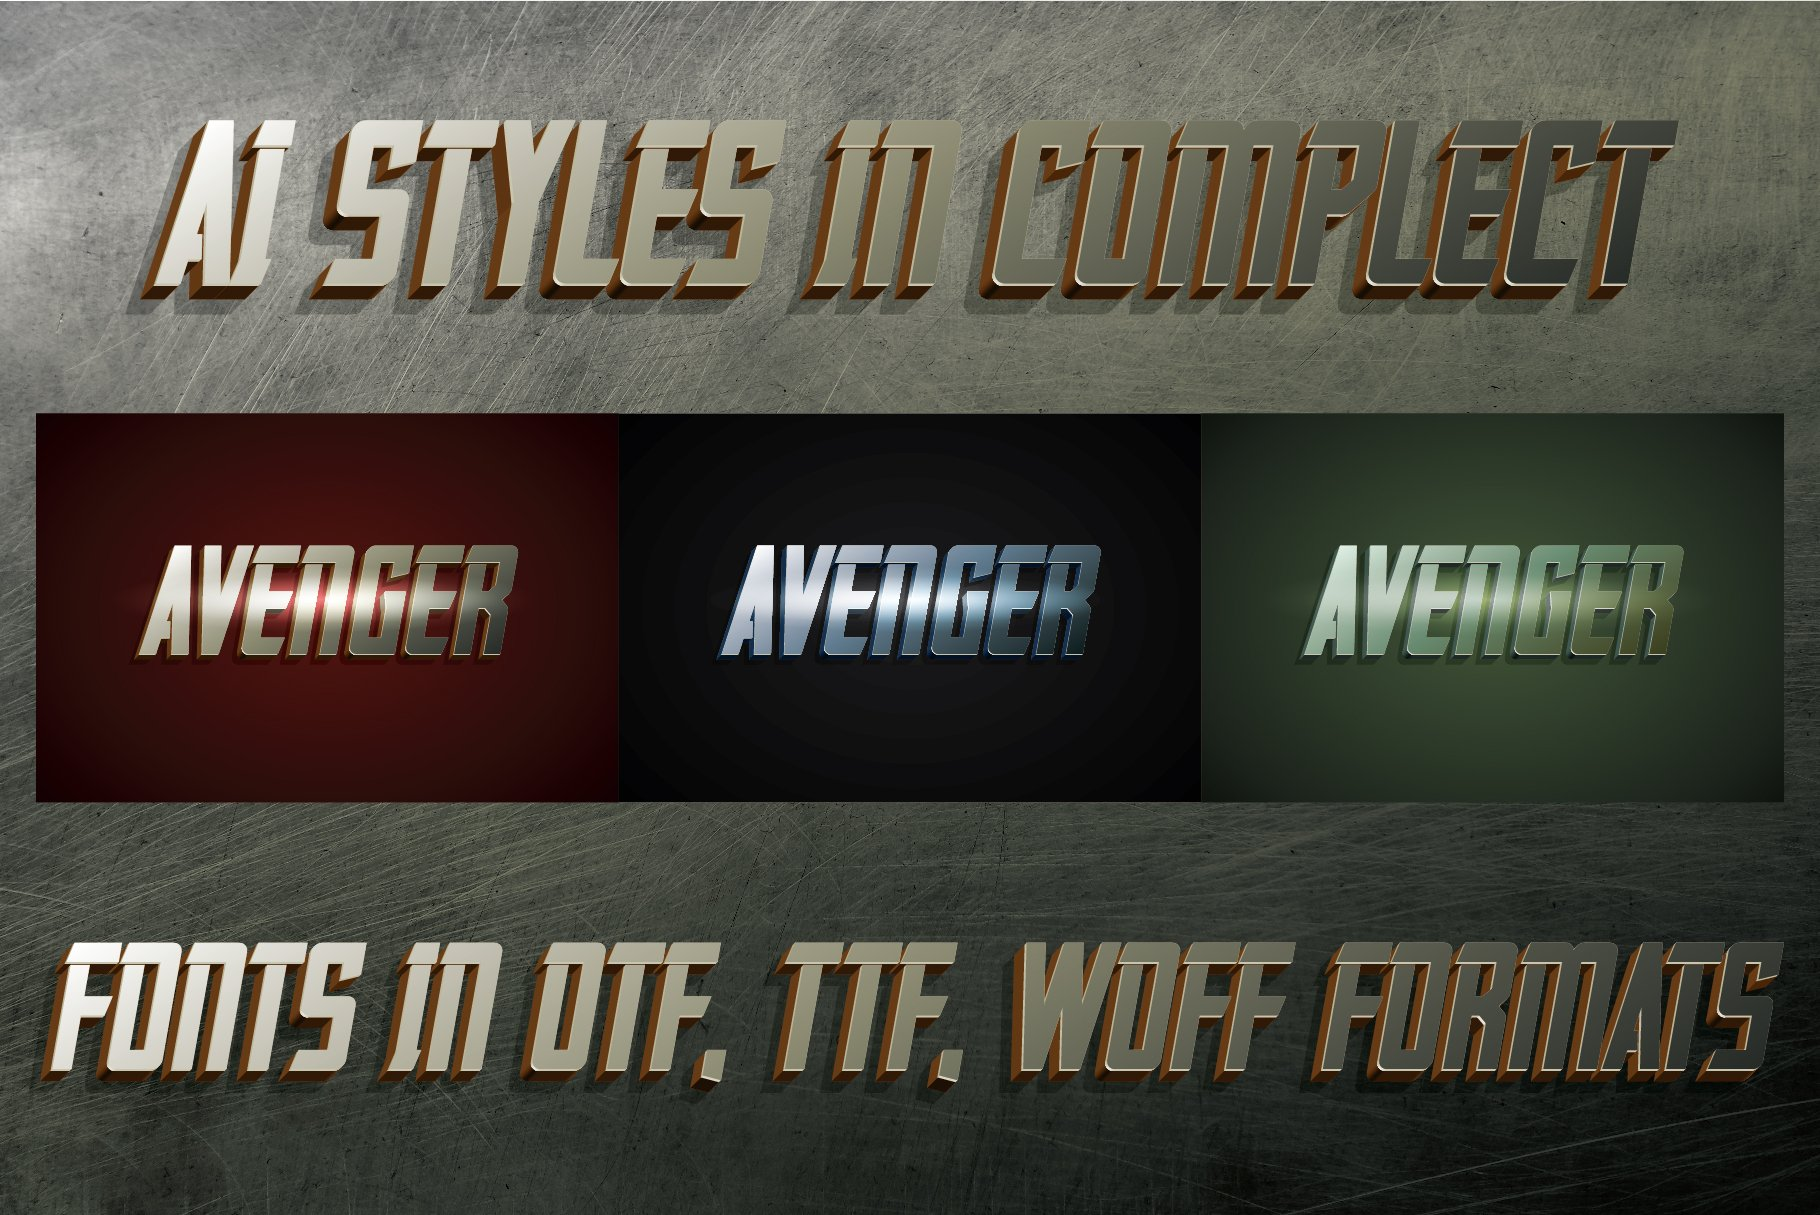 All styles in complect.